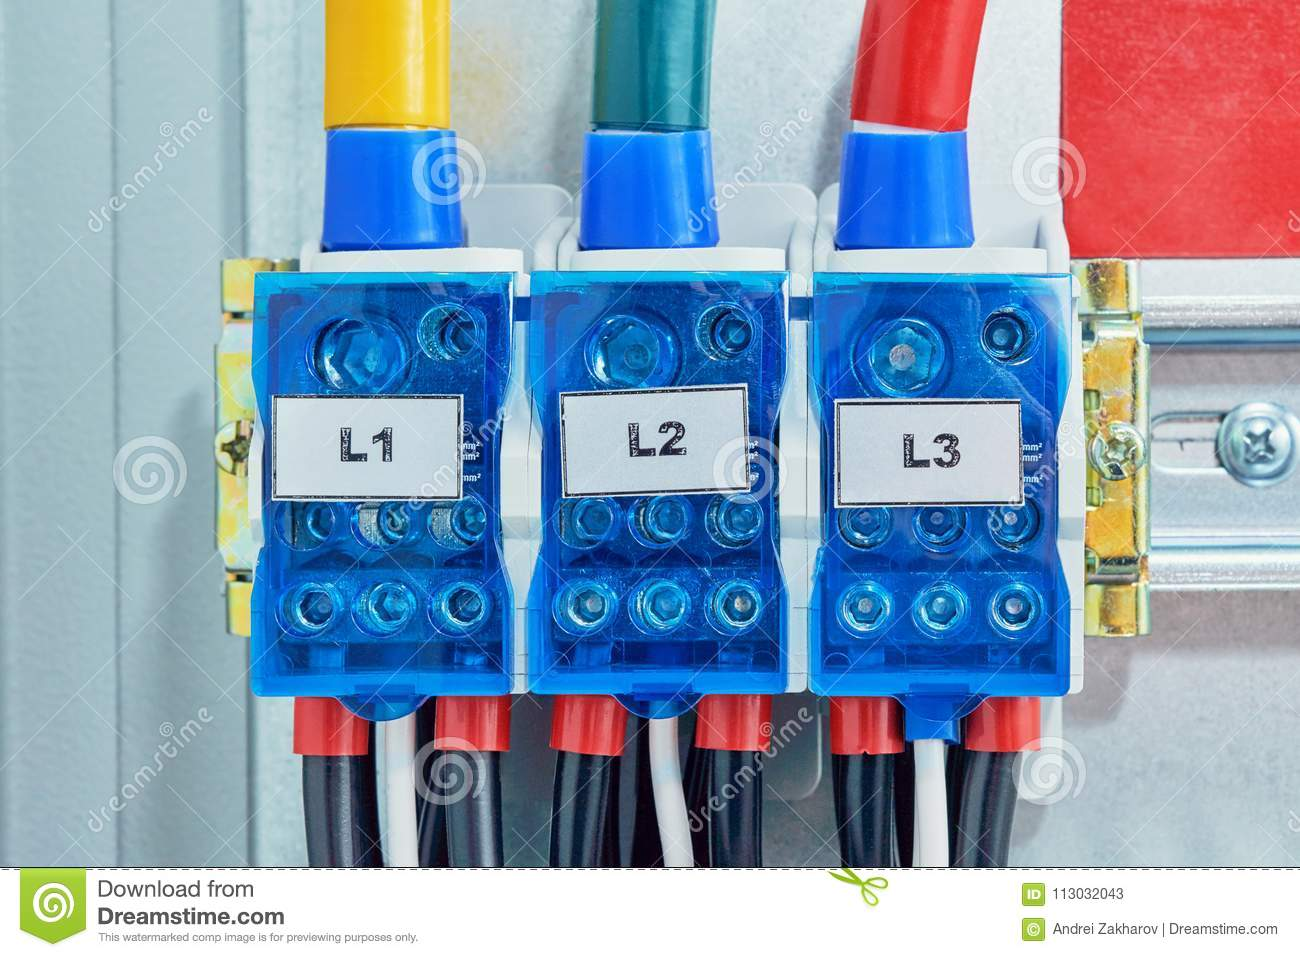 Wires To Connect The Switches To Each Other L1 To L1 And L2 To L2